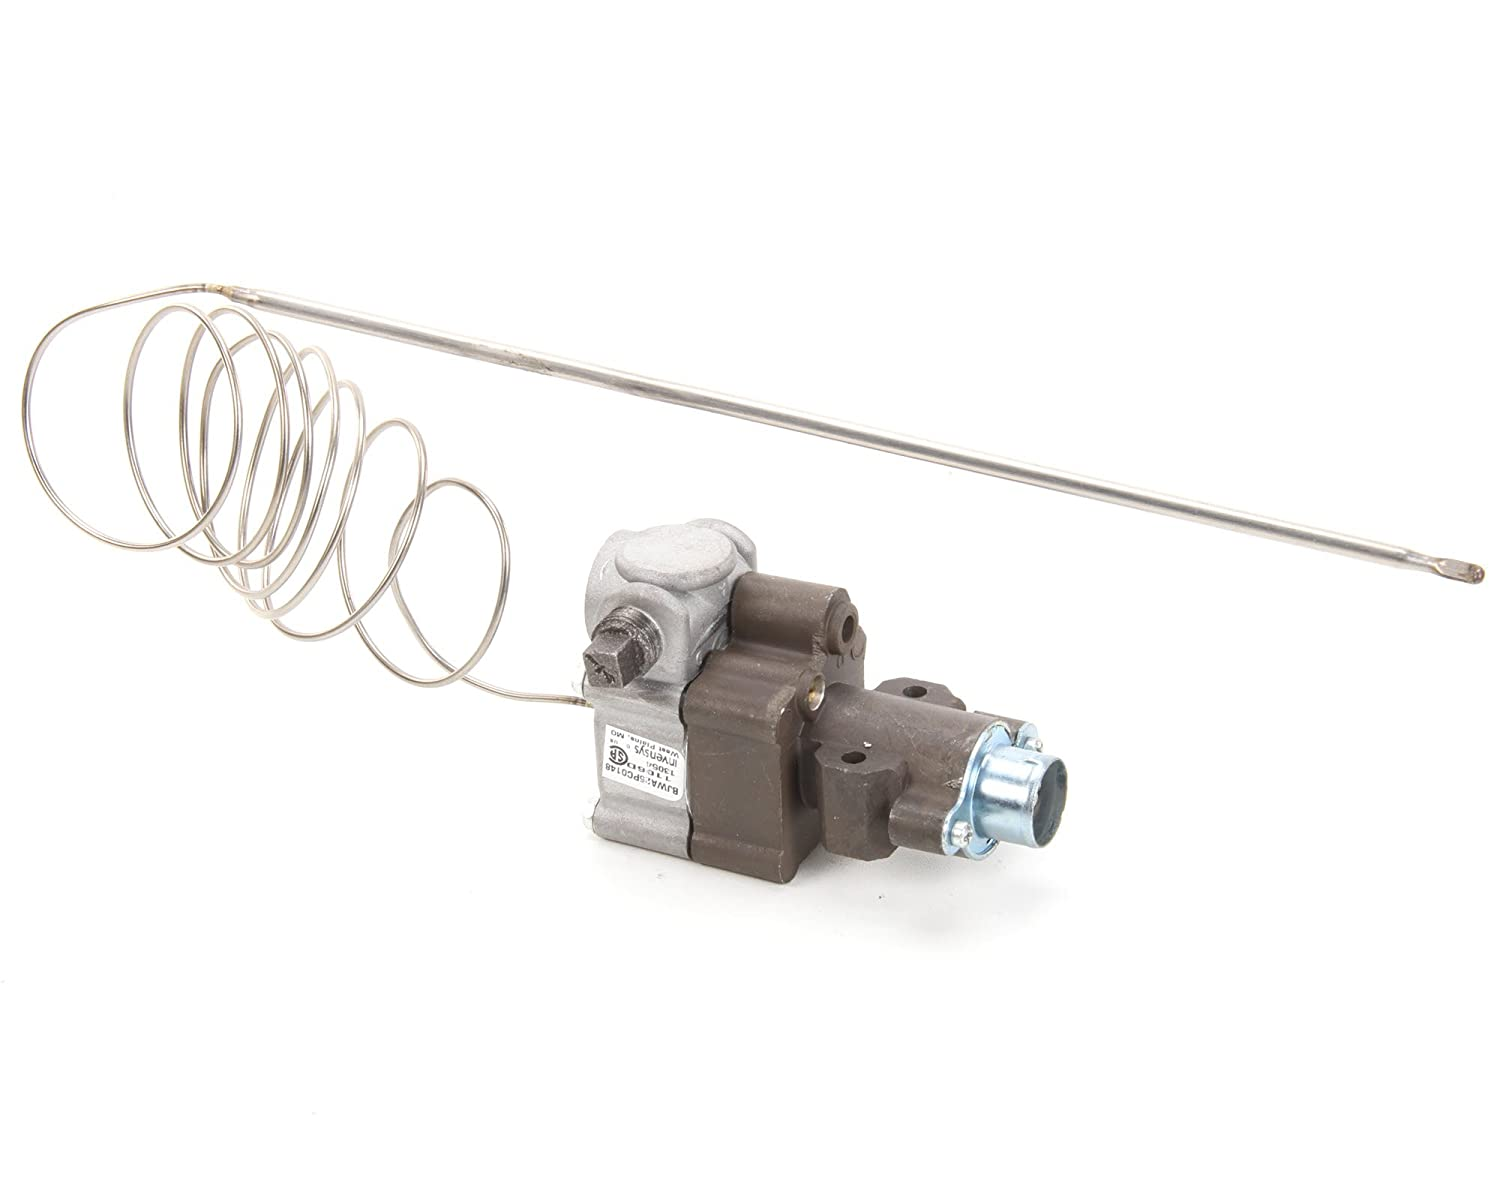 American Range A11101 BJ Thermostat, Griddle/Gas Oven